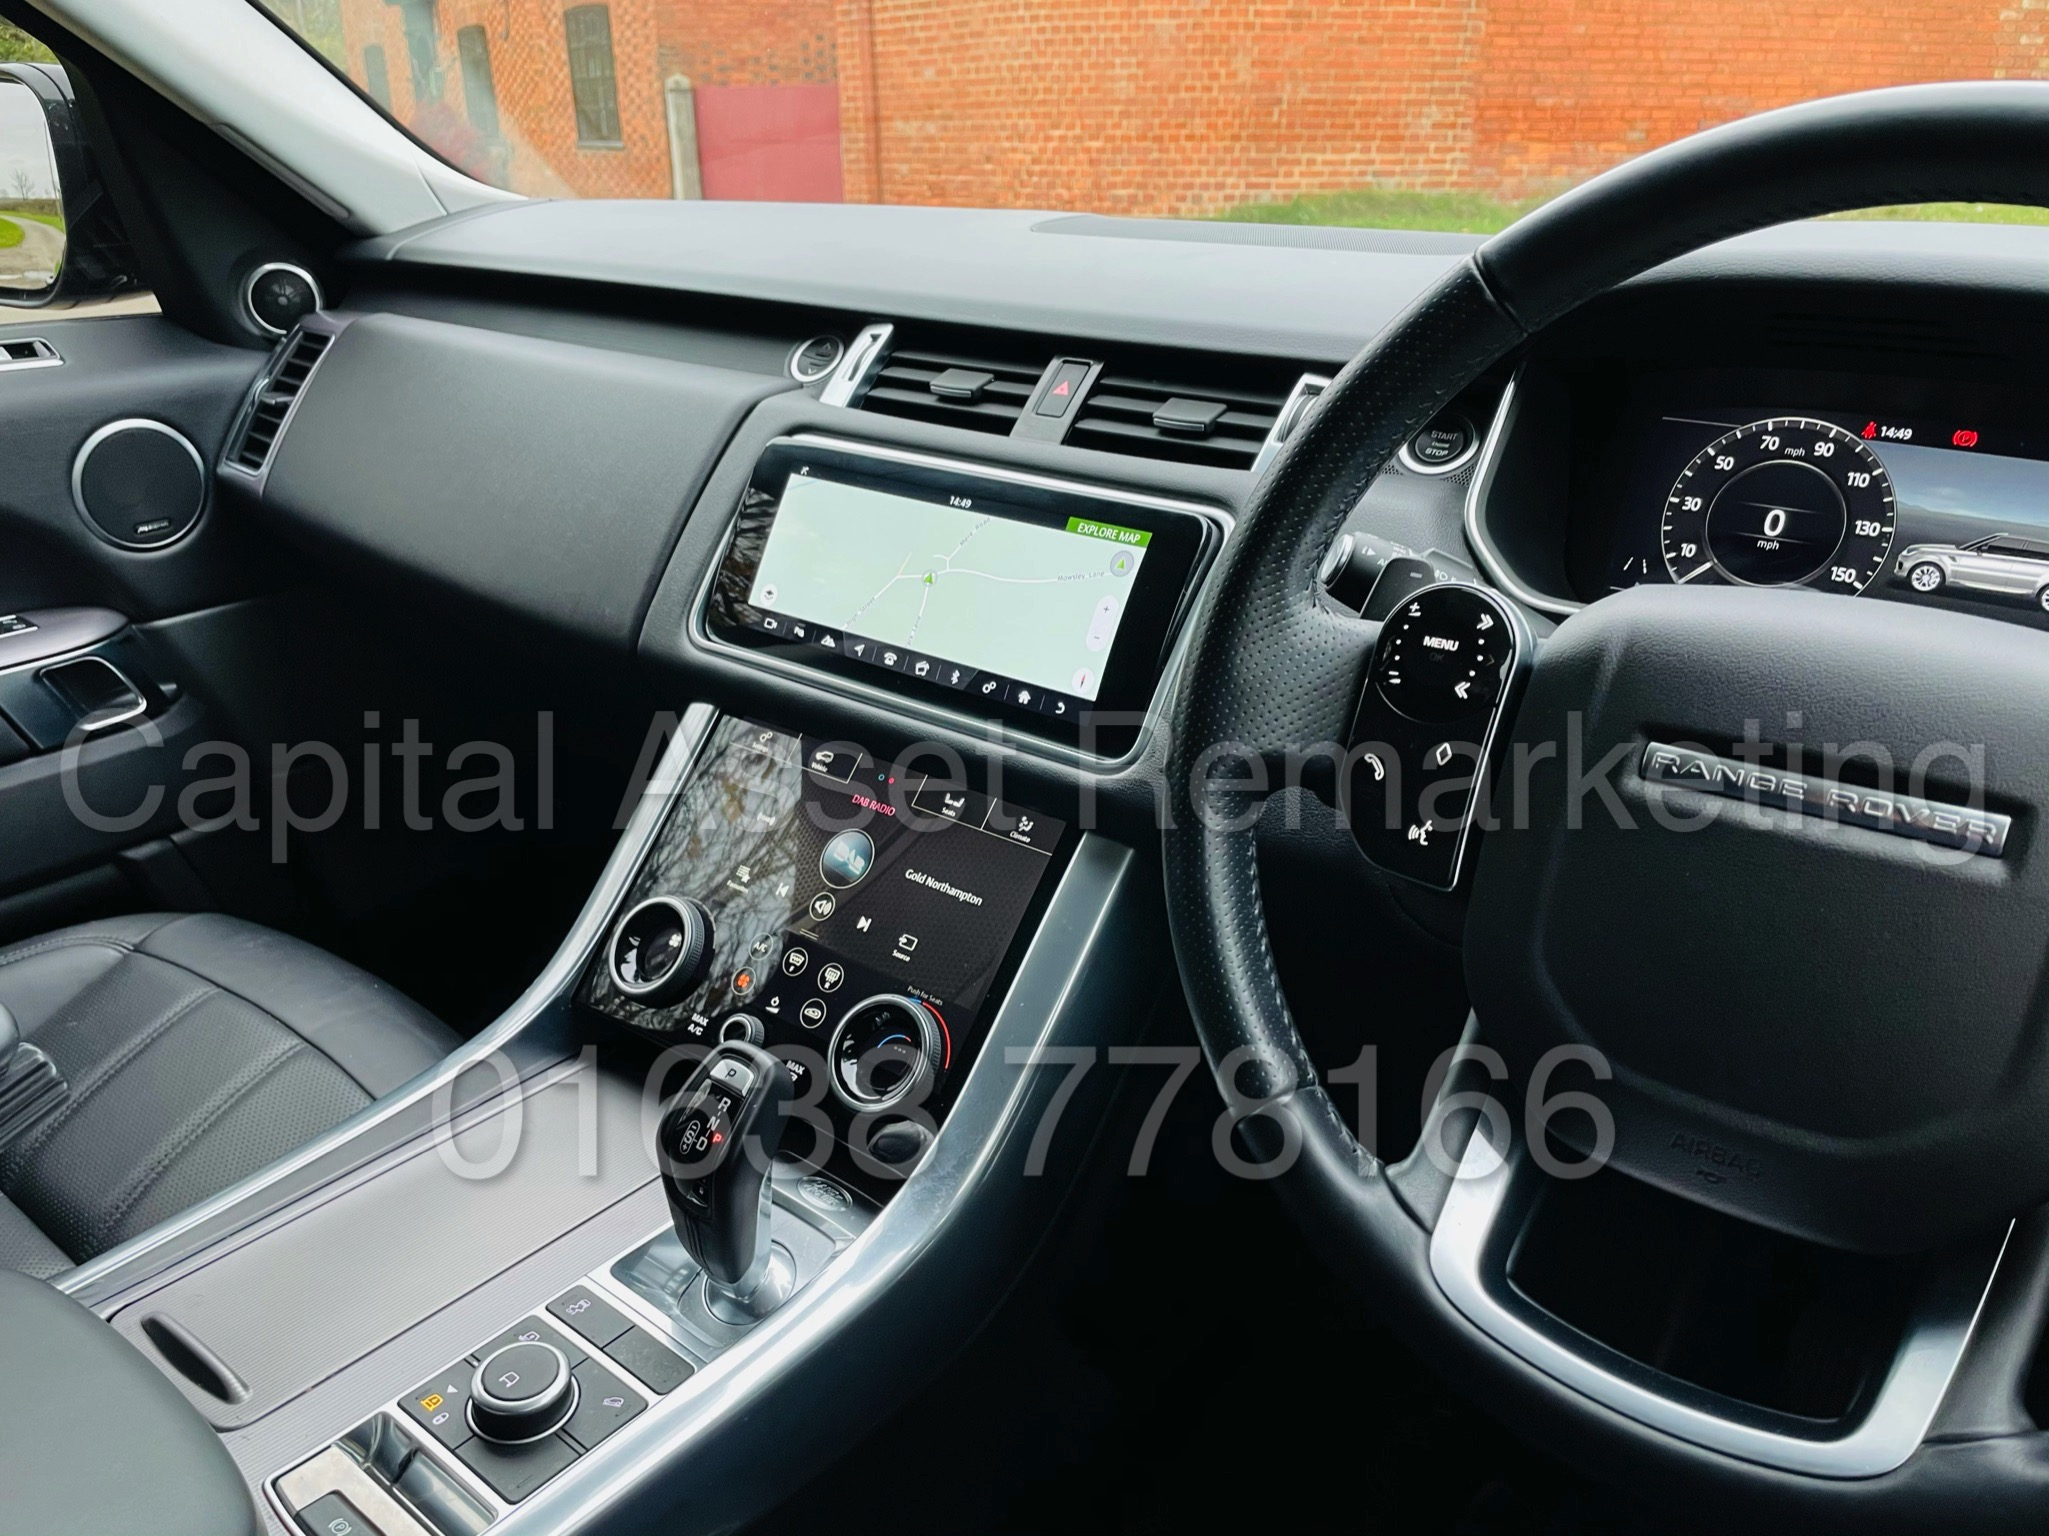 RANGE ROVER SPORT *HSE EDITION* SUV (2019 MODEL) '3.0 SDV6 - 306 BHP - 8 SPEED AUTO' *FULLY LOADED* - Image 46 of 56